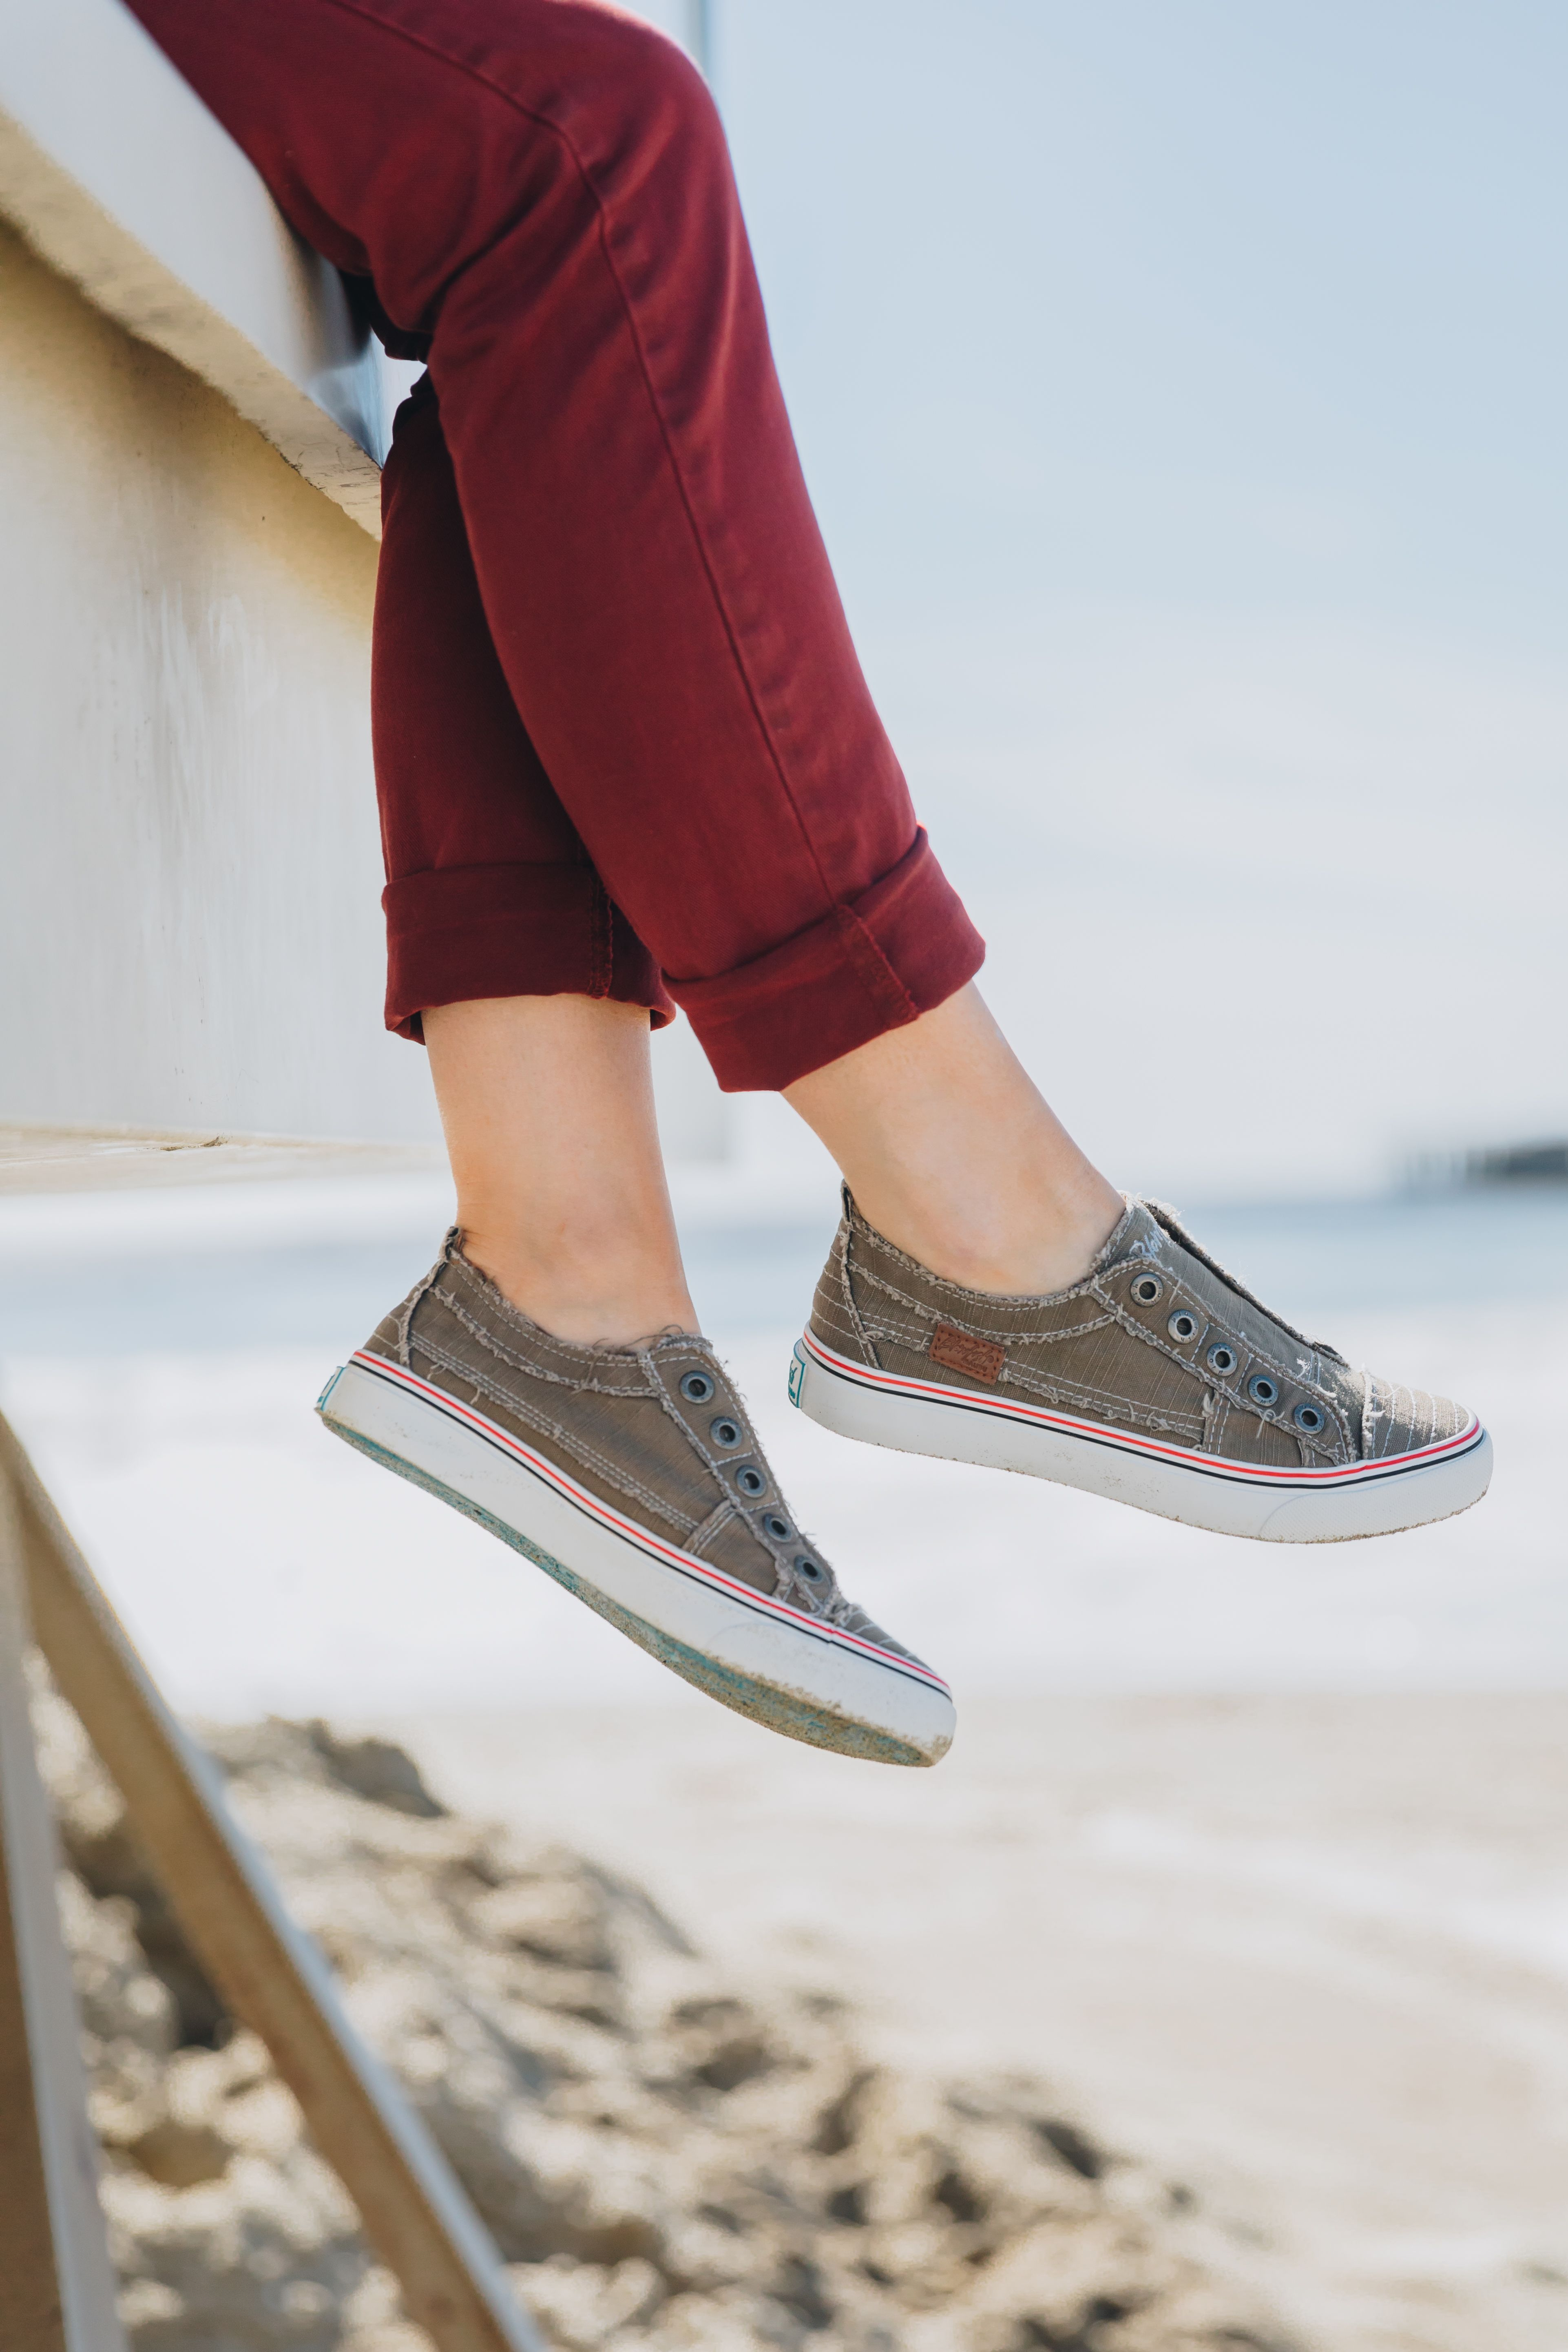 Hot sneakers, Outfit shoes, Shoe features